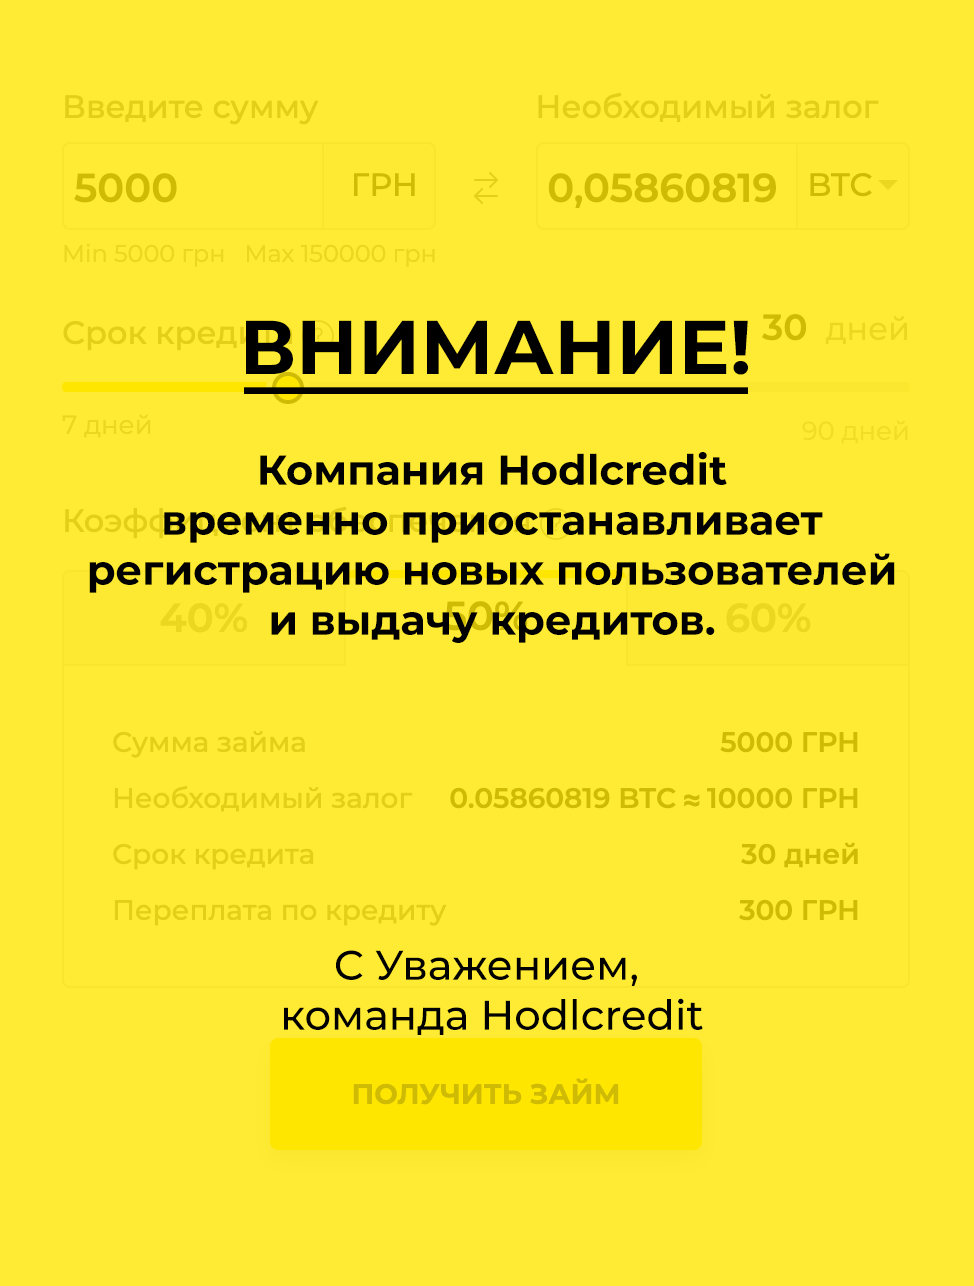 Внимание! Компания Hodlcredit временно приостанавливает регистрацию новых пользователей и выдачу кредитов. С Уважением, Hodlcredit.